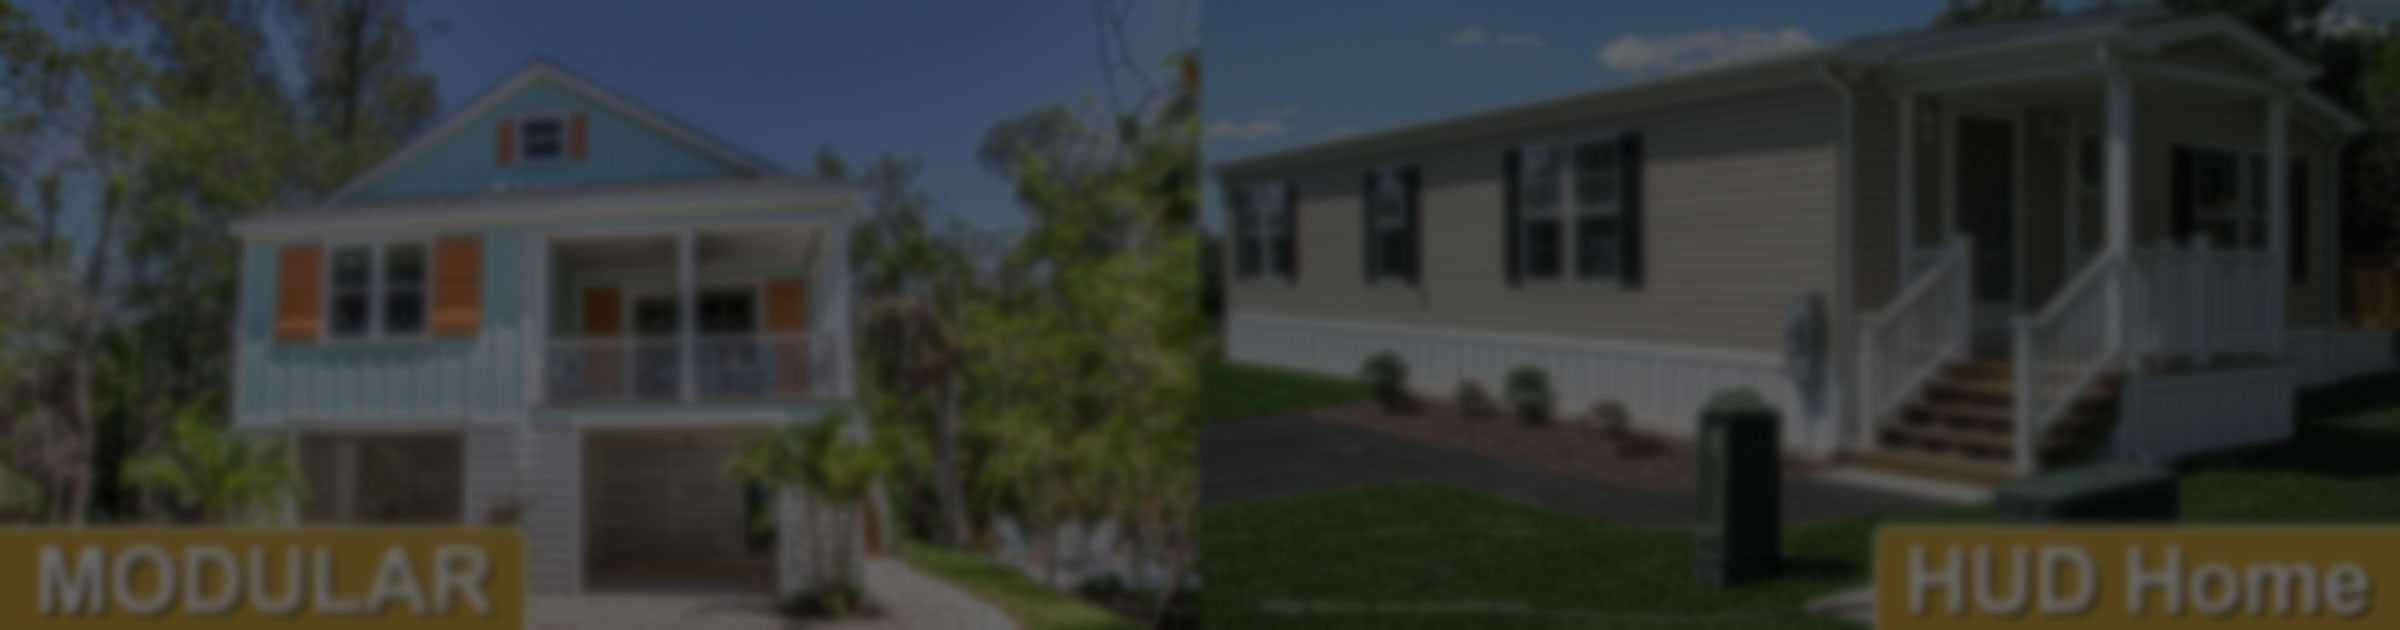 Modular vs. HUD Homes, What's the Difference?